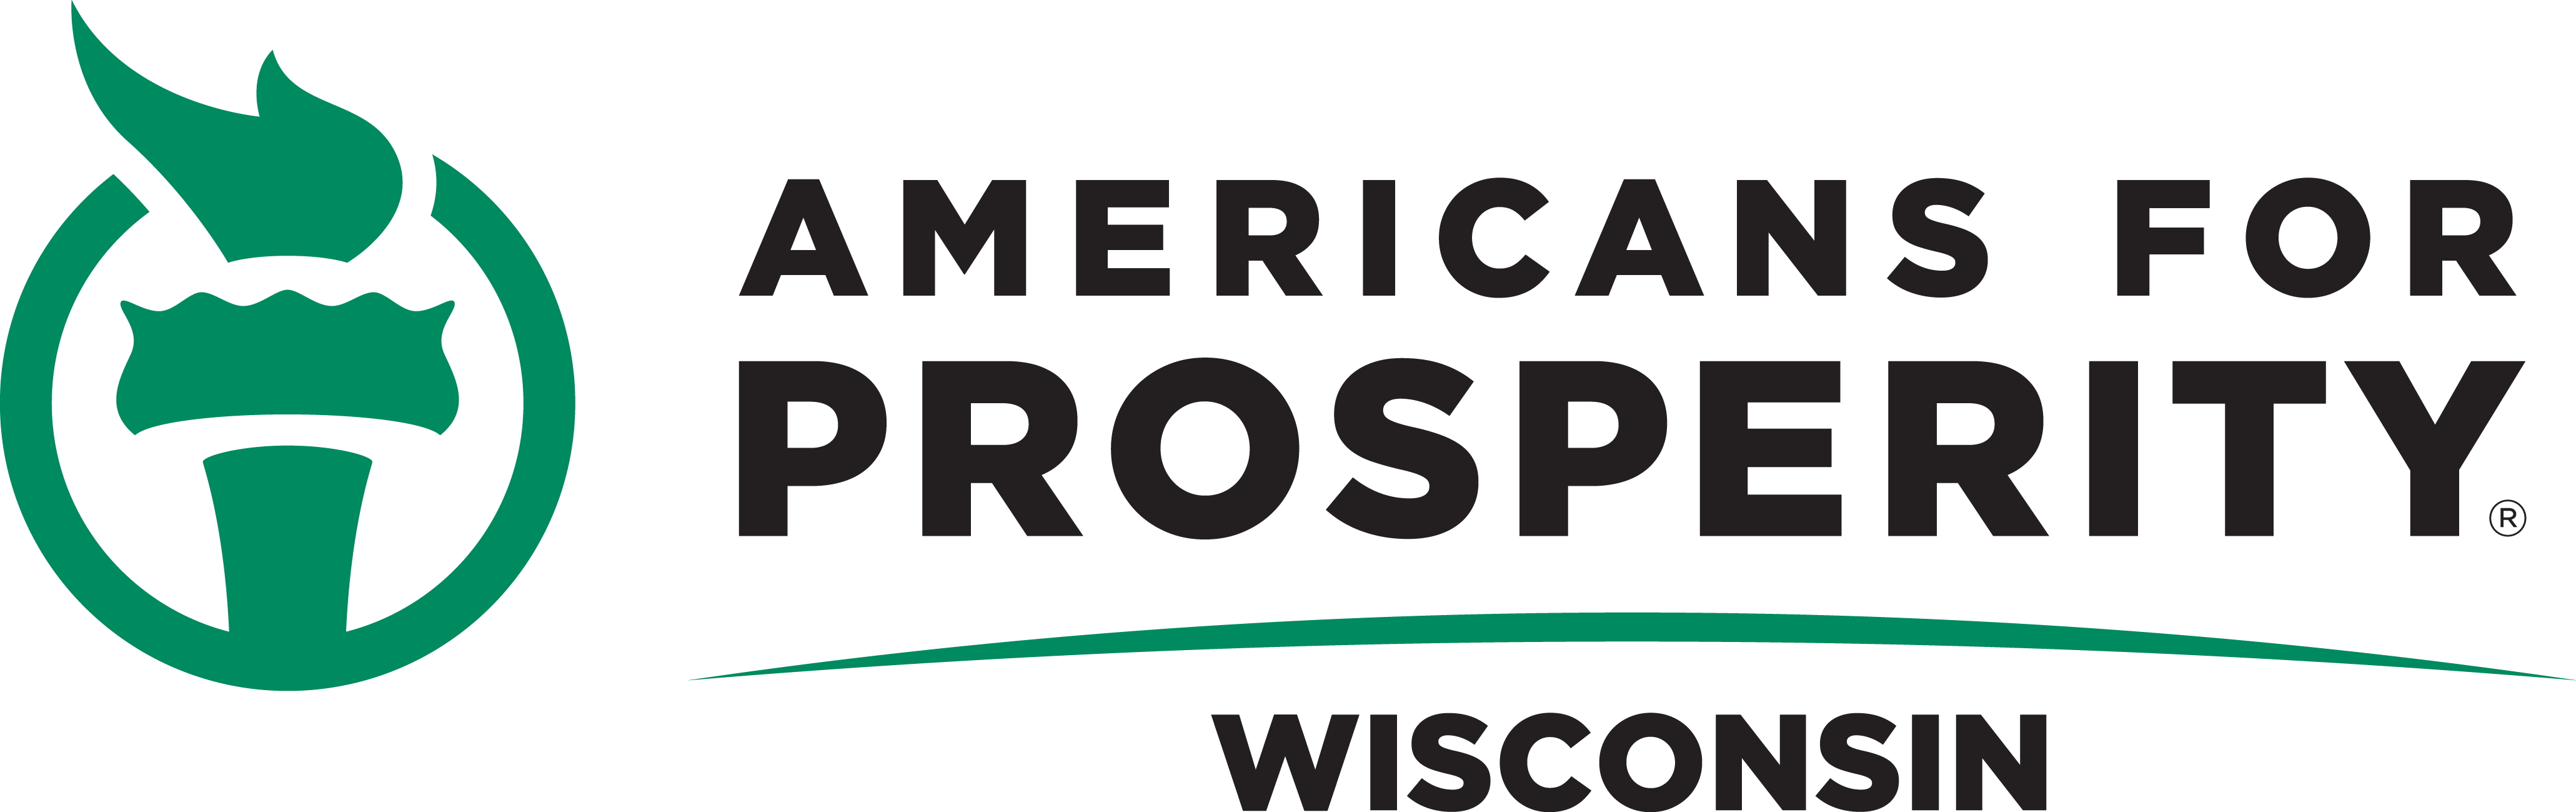 Americans for Prosperity – Wisconsin Responds to Gov. Evers' Budget Proposal, Urges Fiscal Restraint